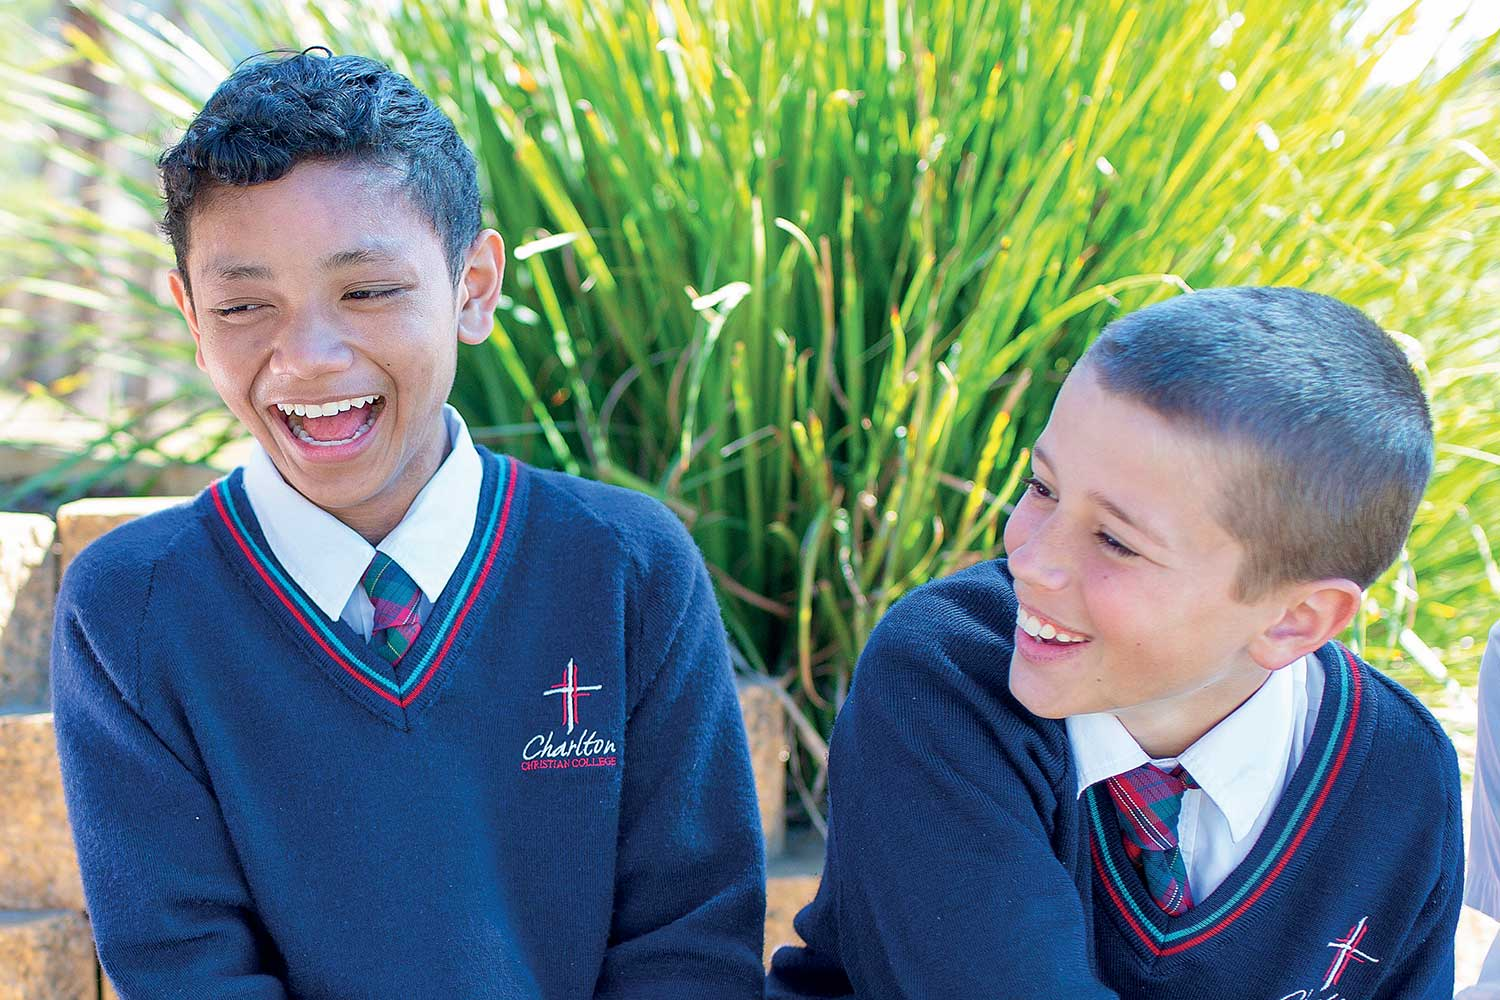 charlton christian college newsletter